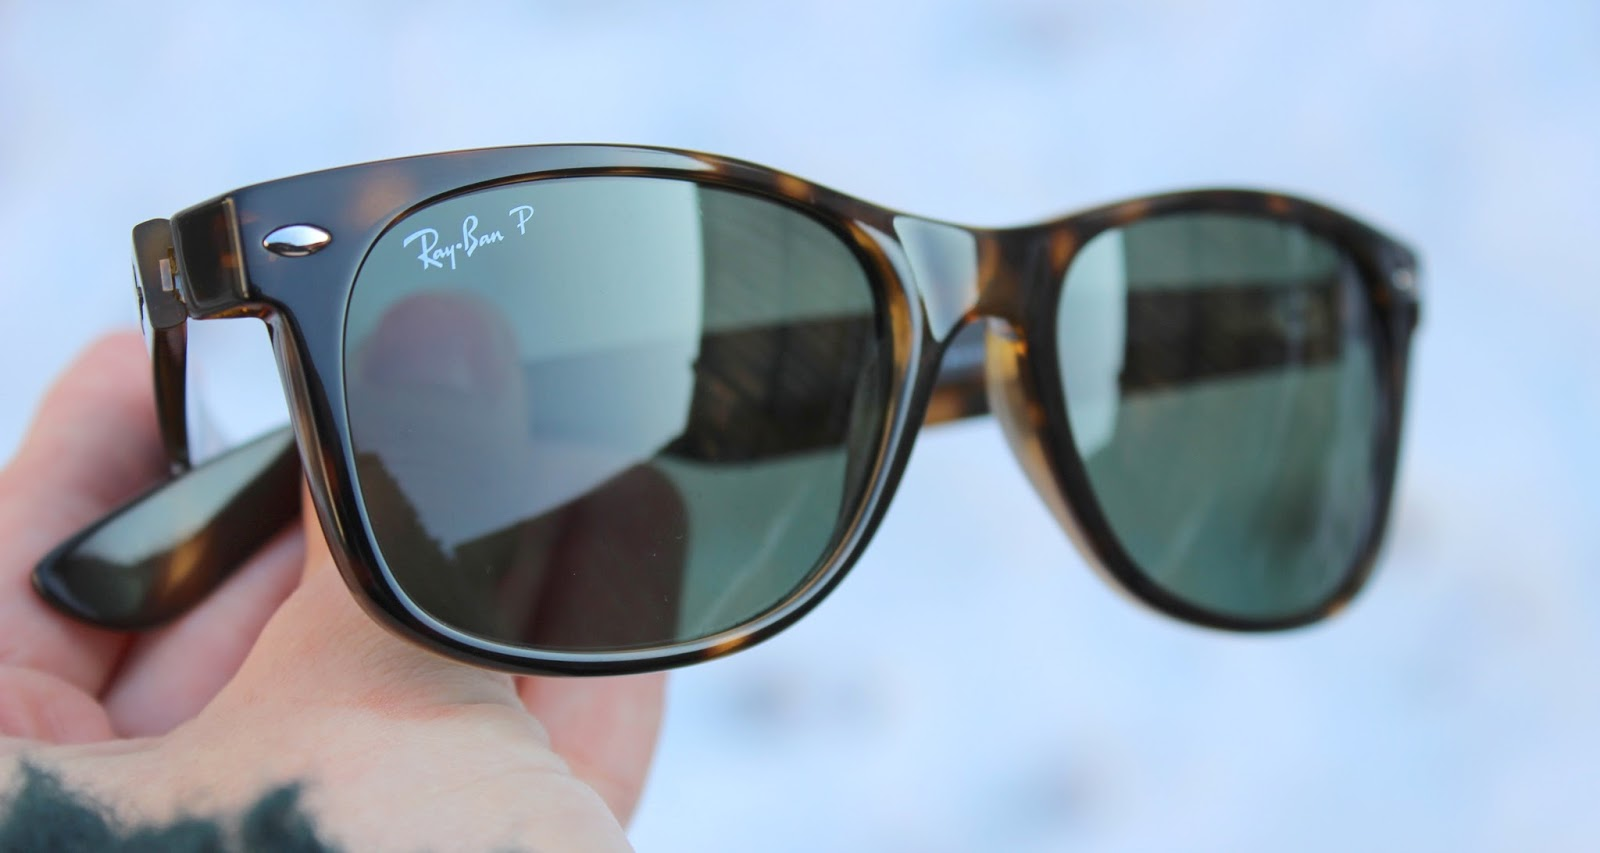 Smart Buy Glasses raybans review